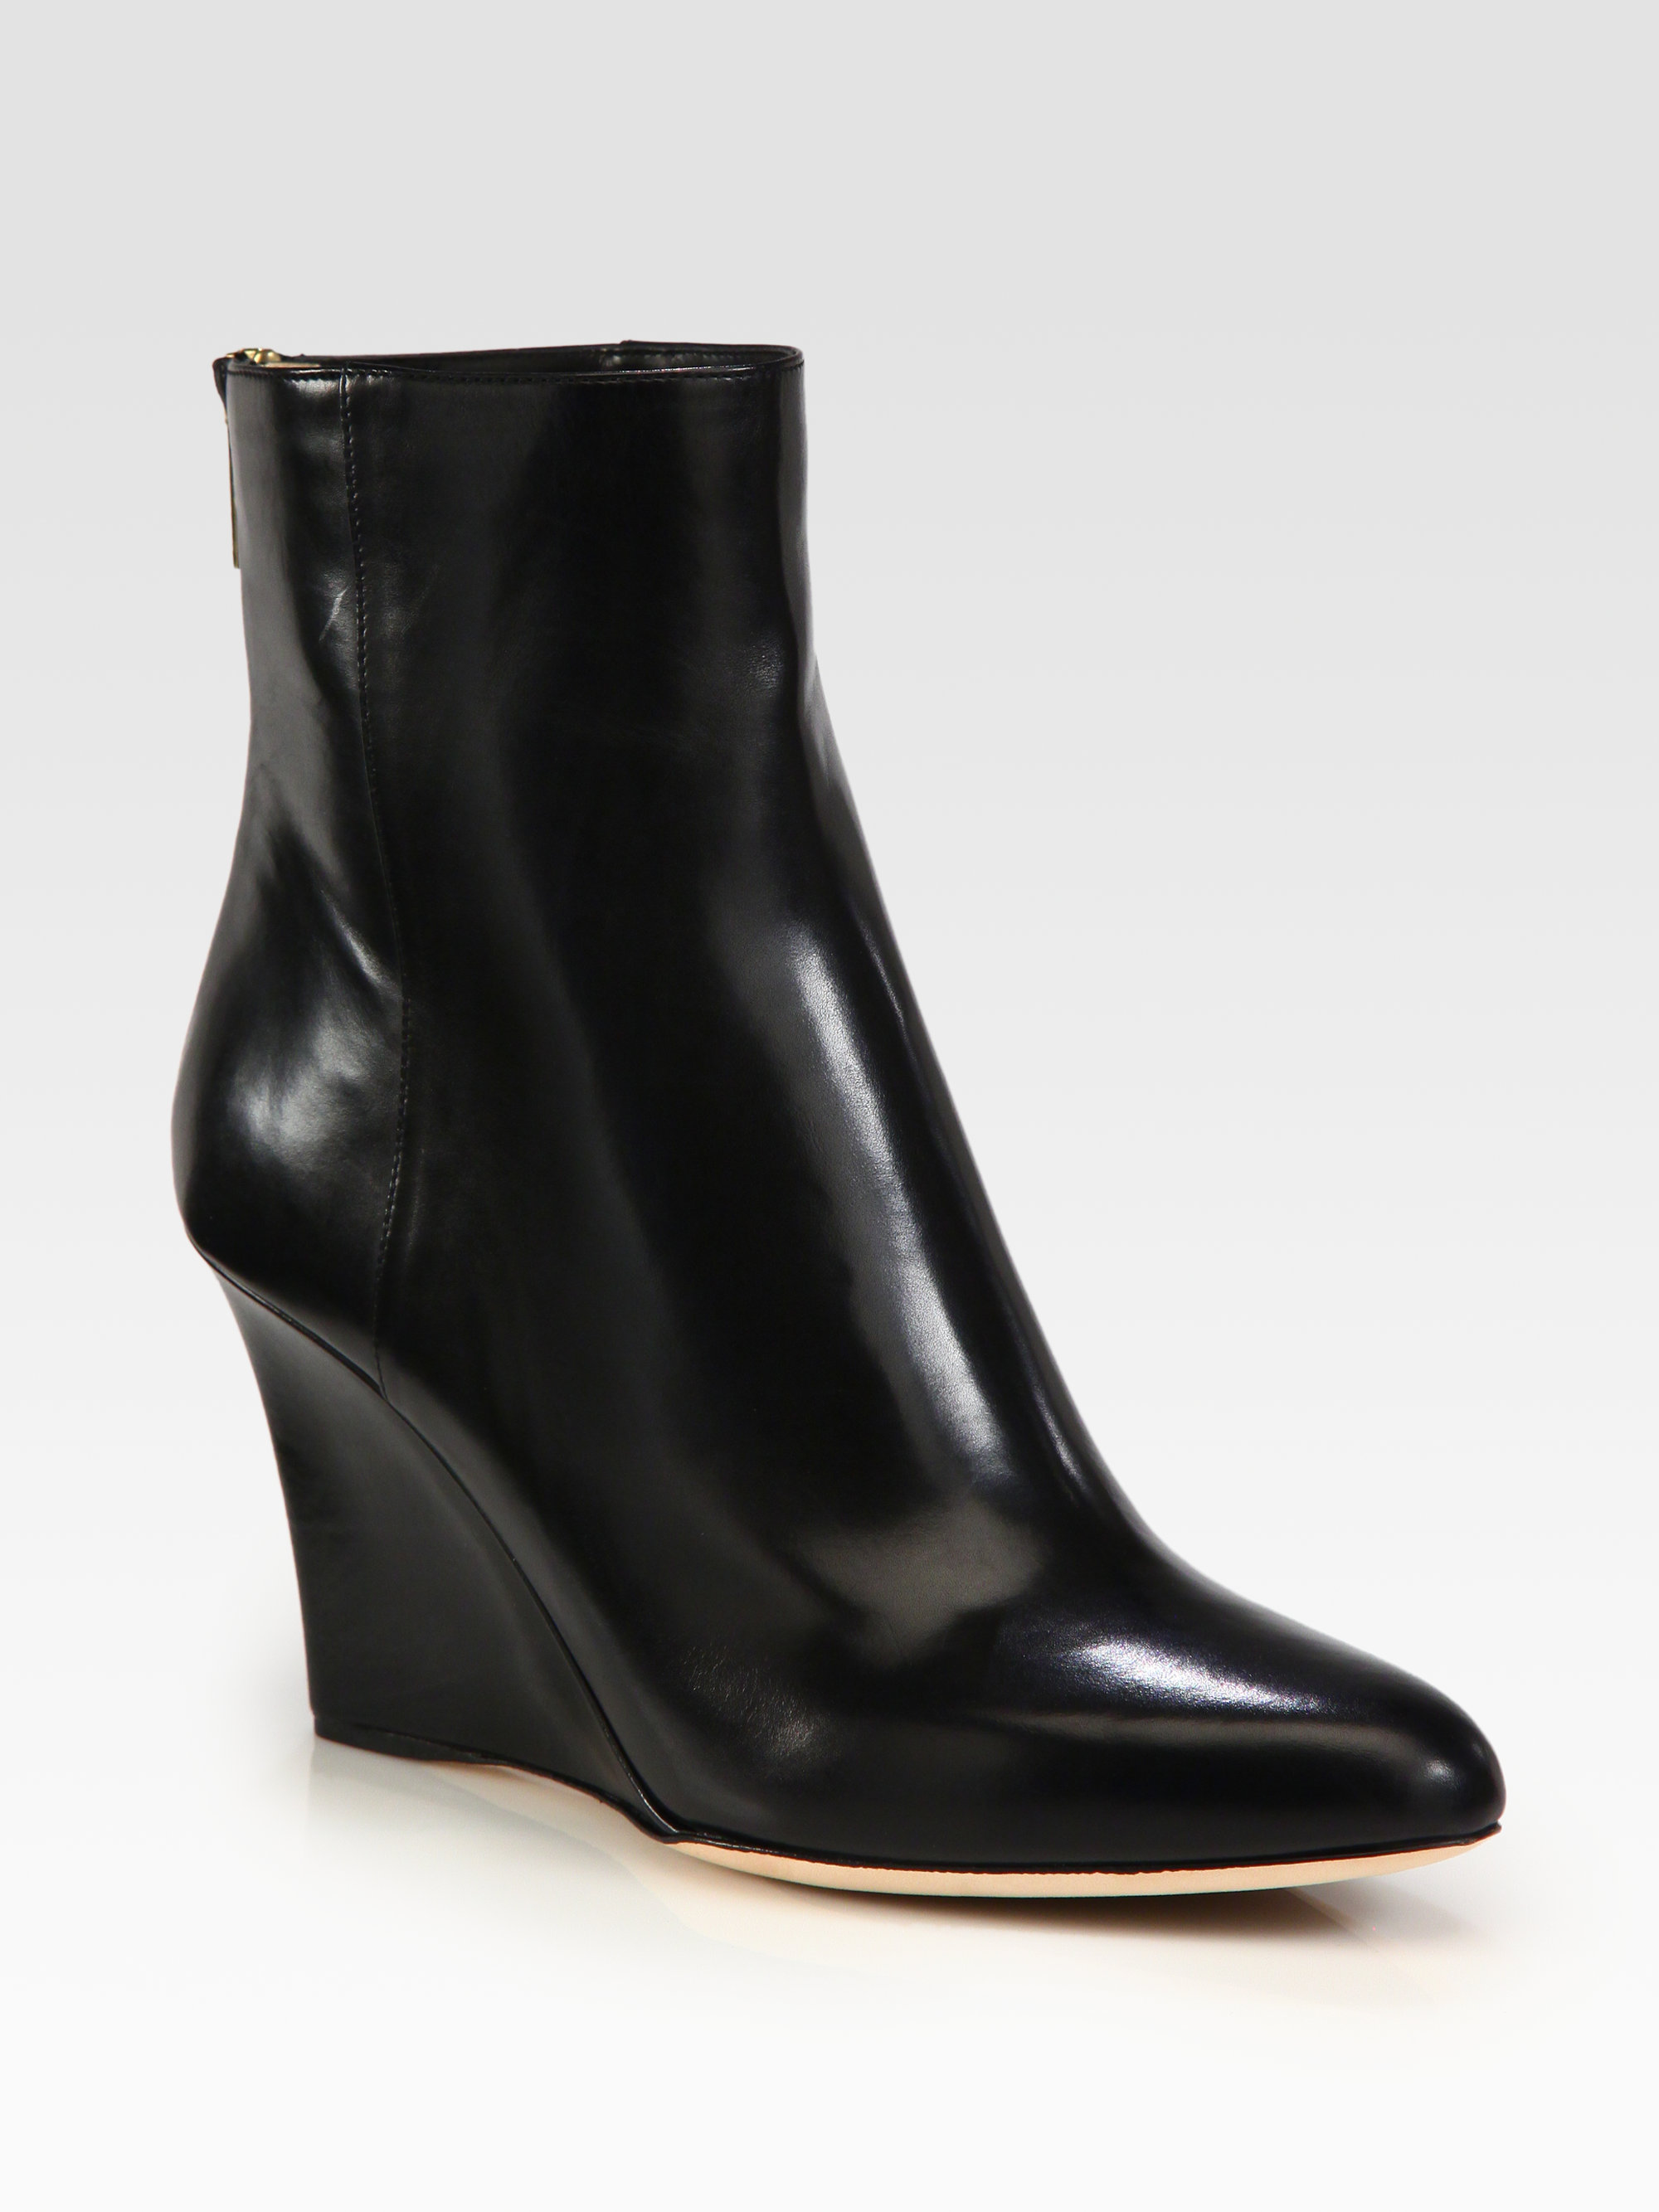 52287197752d ... clearance lyst jimmy choo mayor leather wedge ankle boots in black  e080b a57fa ...